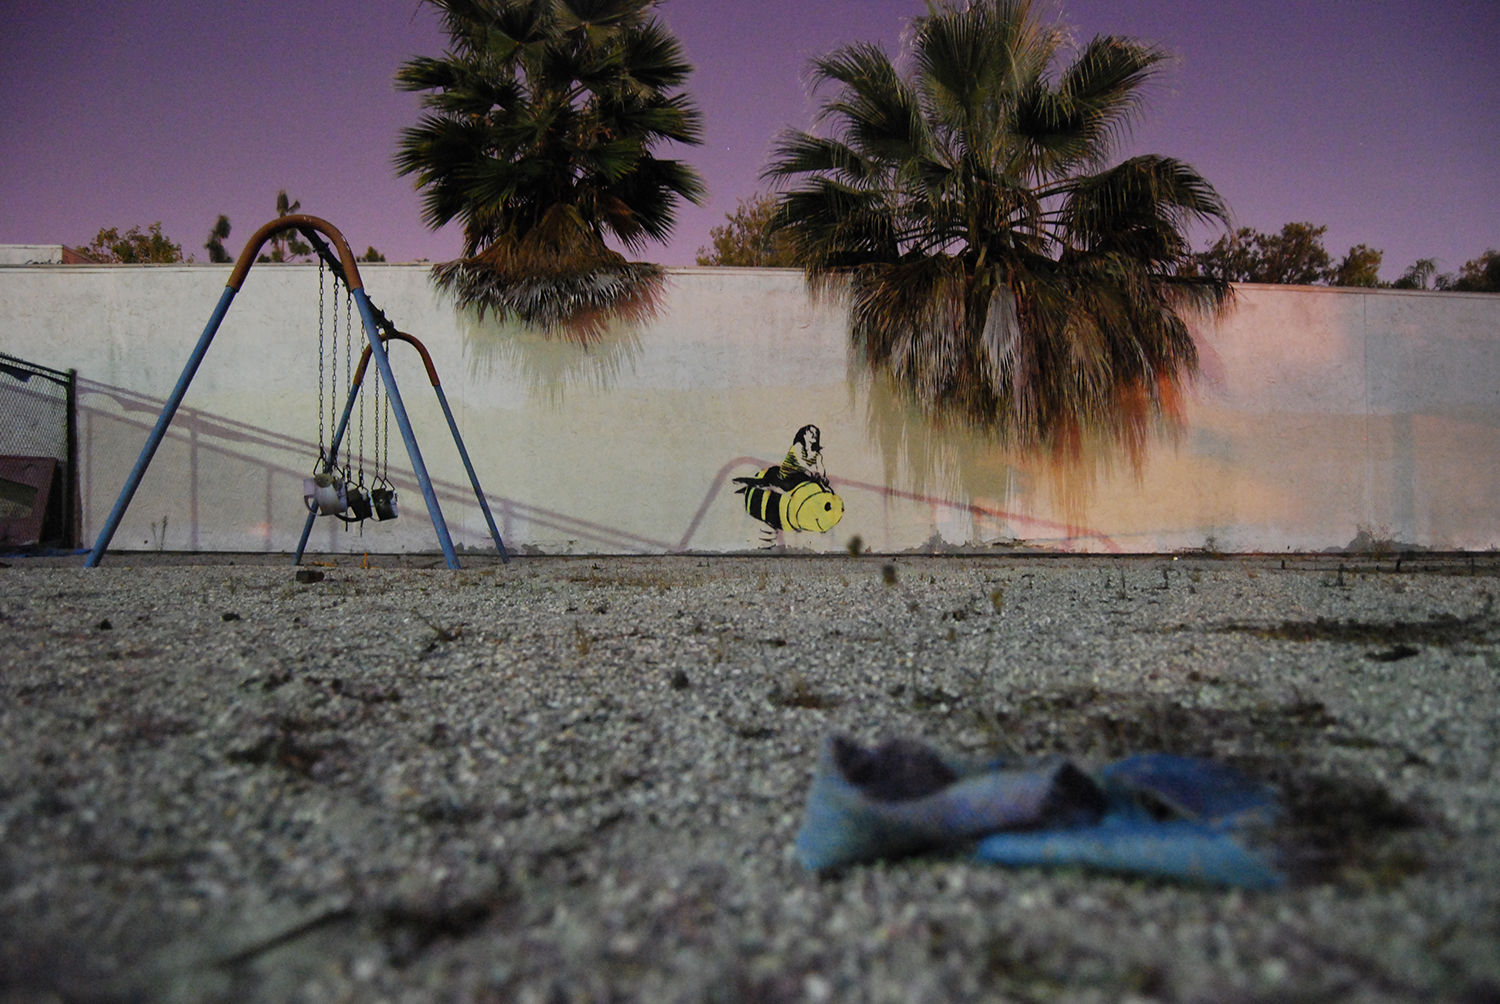 Abandoned Playground, Downey, CA 2009 - Bumblebeelovesyou